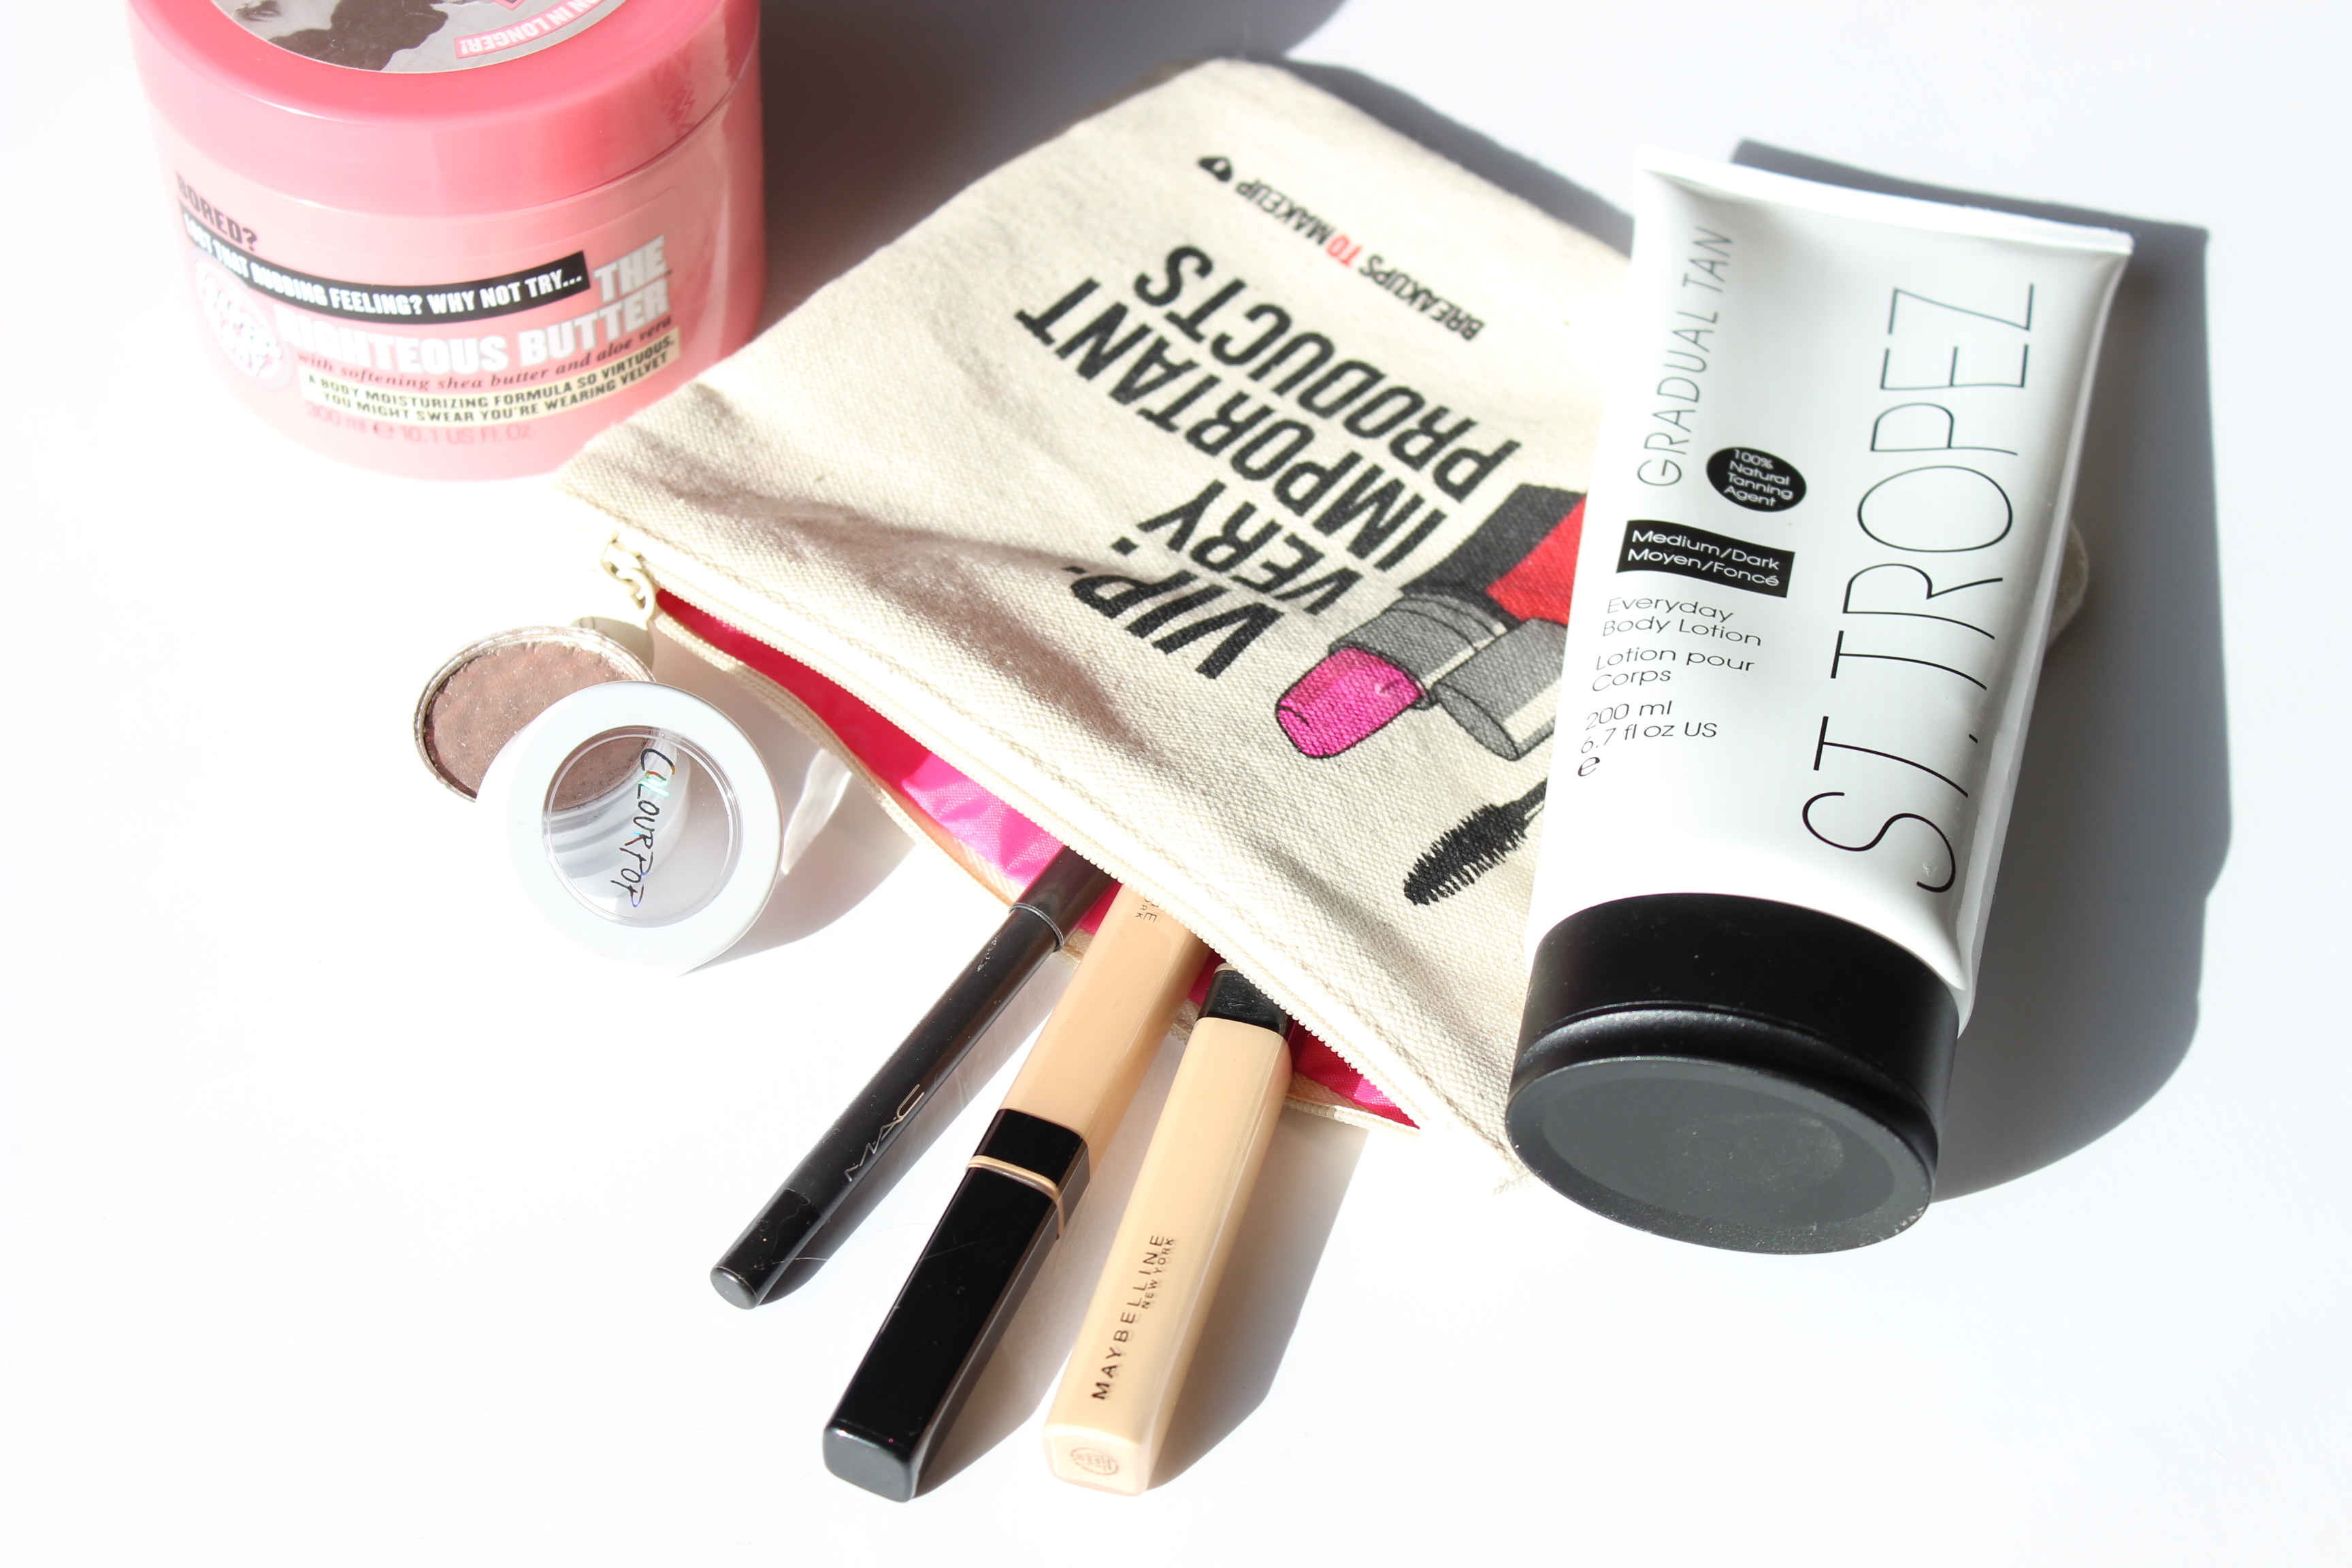 BrighterDarling.com October 2015 Makeup Favorites | Houston Beauty Blogger | Soap and Glory ColourPop Maybelline MAC St Tropez